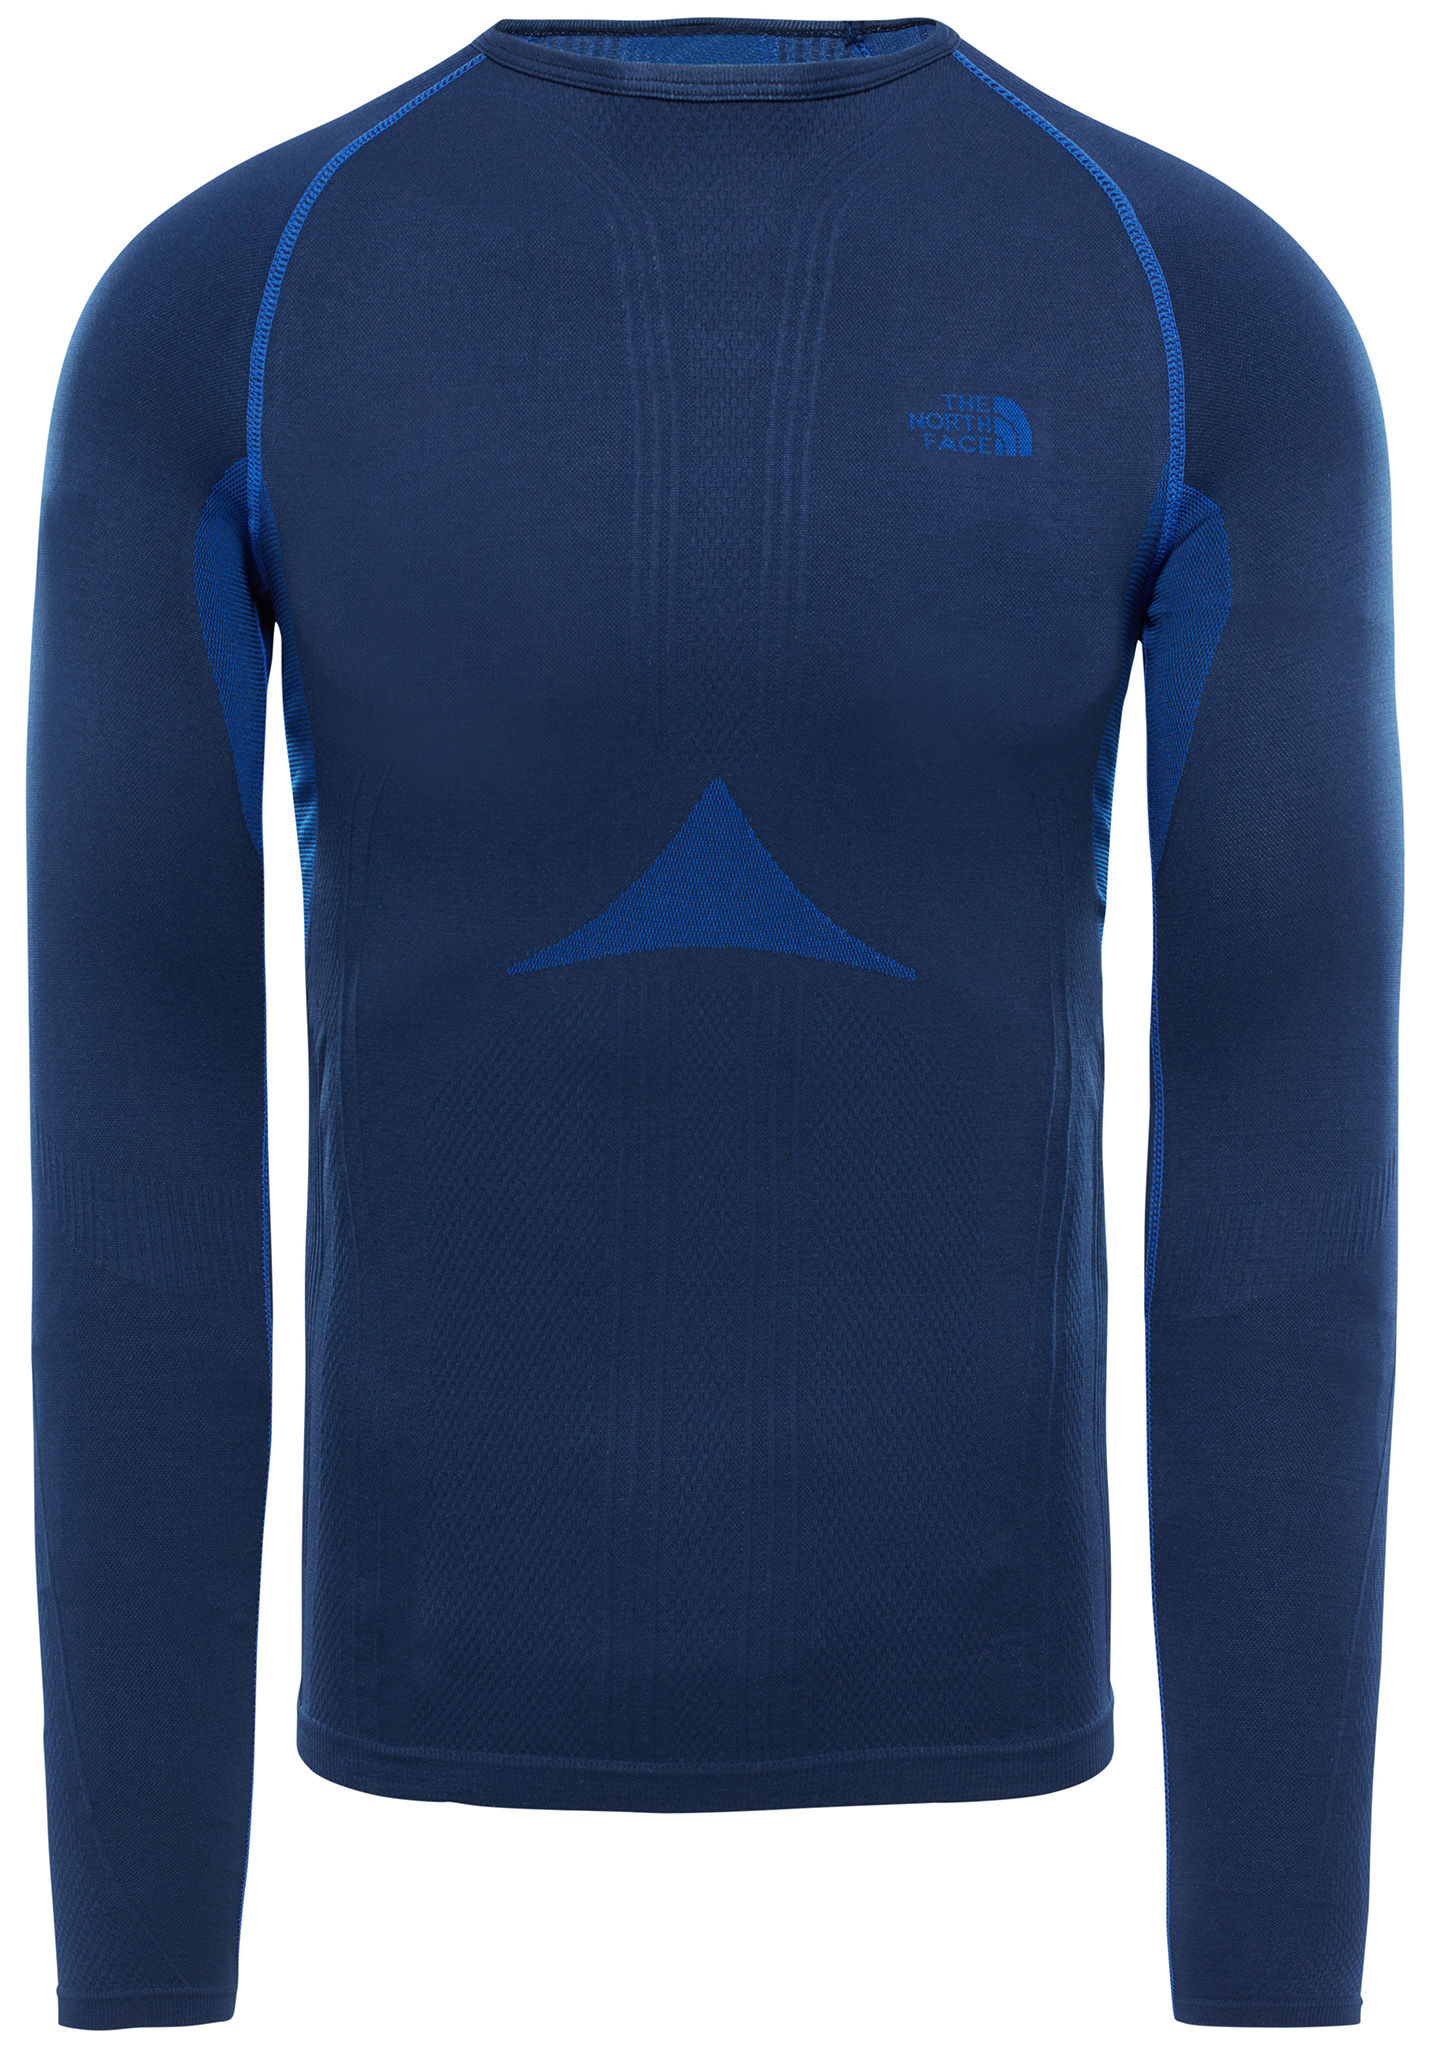 b53d8400d THE NORTH FACE Hybrid Crew Neck - Thermal Underwear for Men - Blue